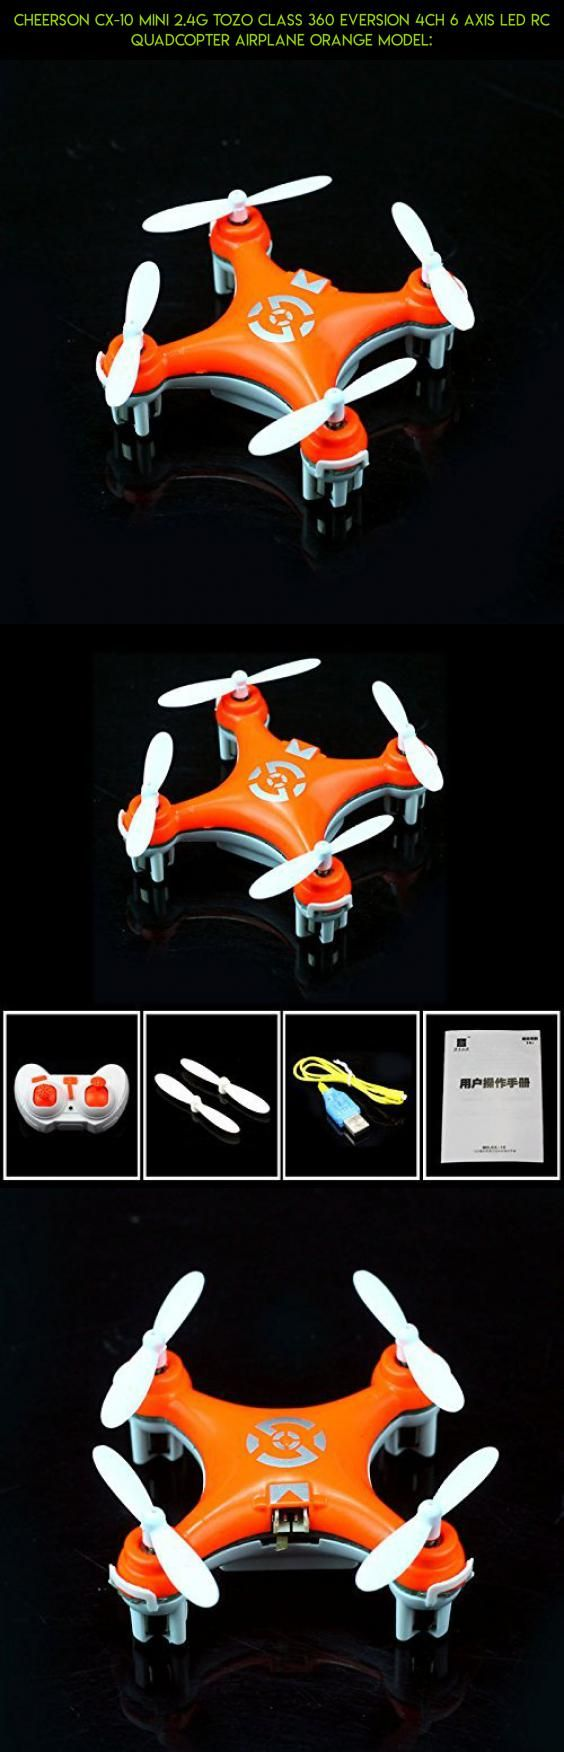 Cheerson Cx-10 Mini 2.4g TOZO Class 360 Eversion 4ch 6 Axis LED Rc Quadcopter Airplane Orange Model: #gadgets #technology #axis #camera #kit #products #racing #parts #tech #shopping #fpv #drone #cheerson #6 #plans